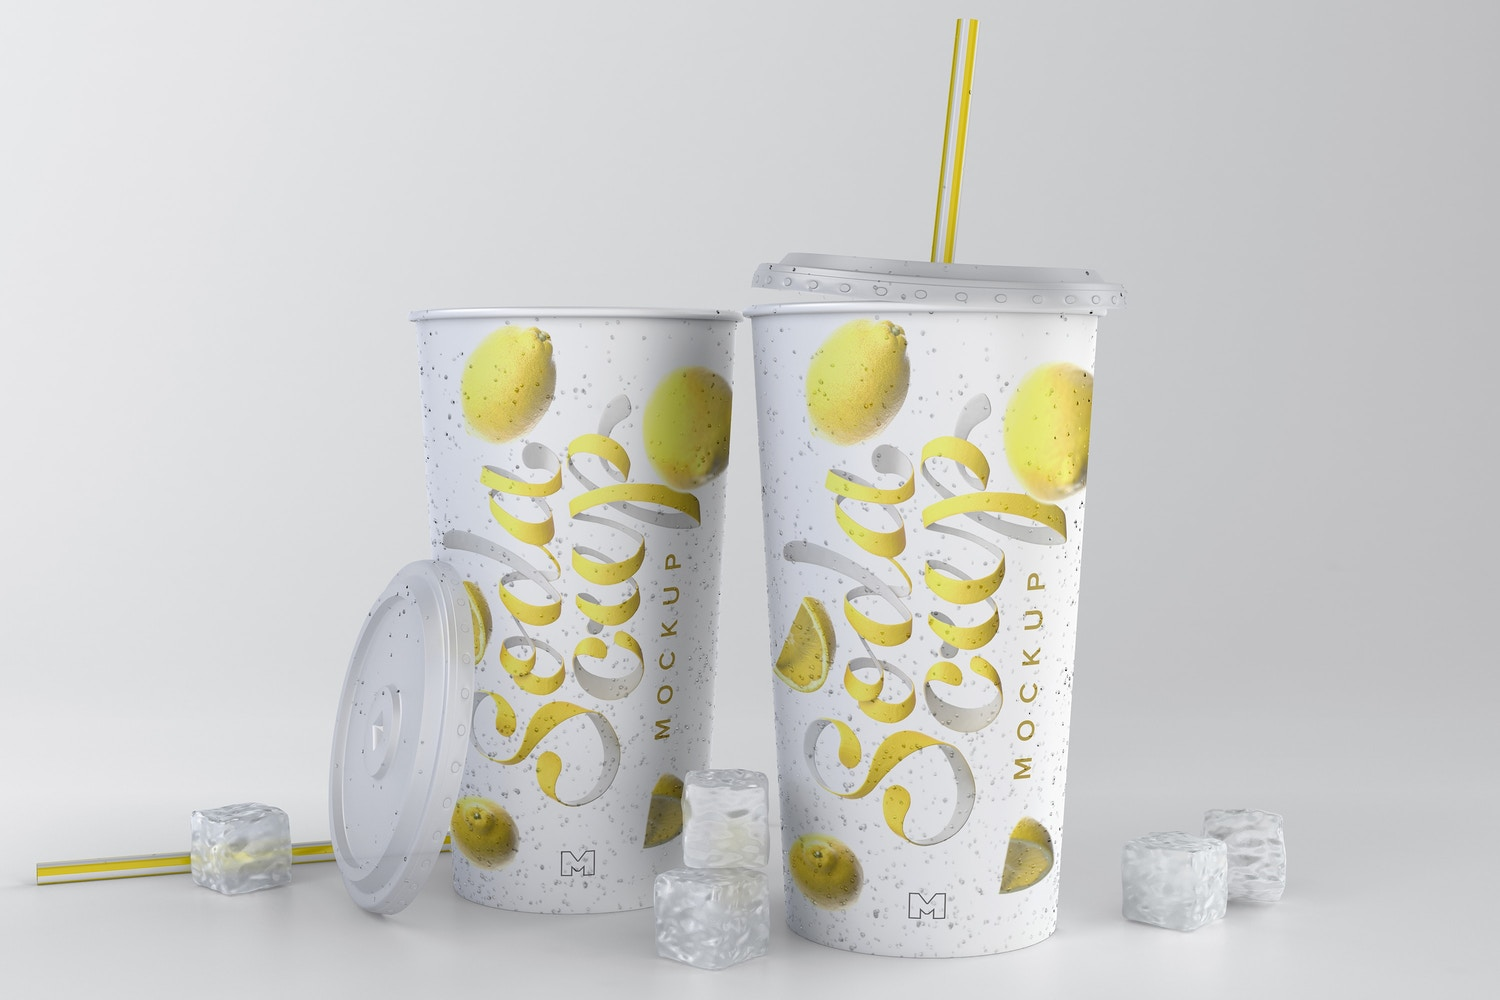 Soda Cup Mockup 03 by Original Mockups on Original Mockups